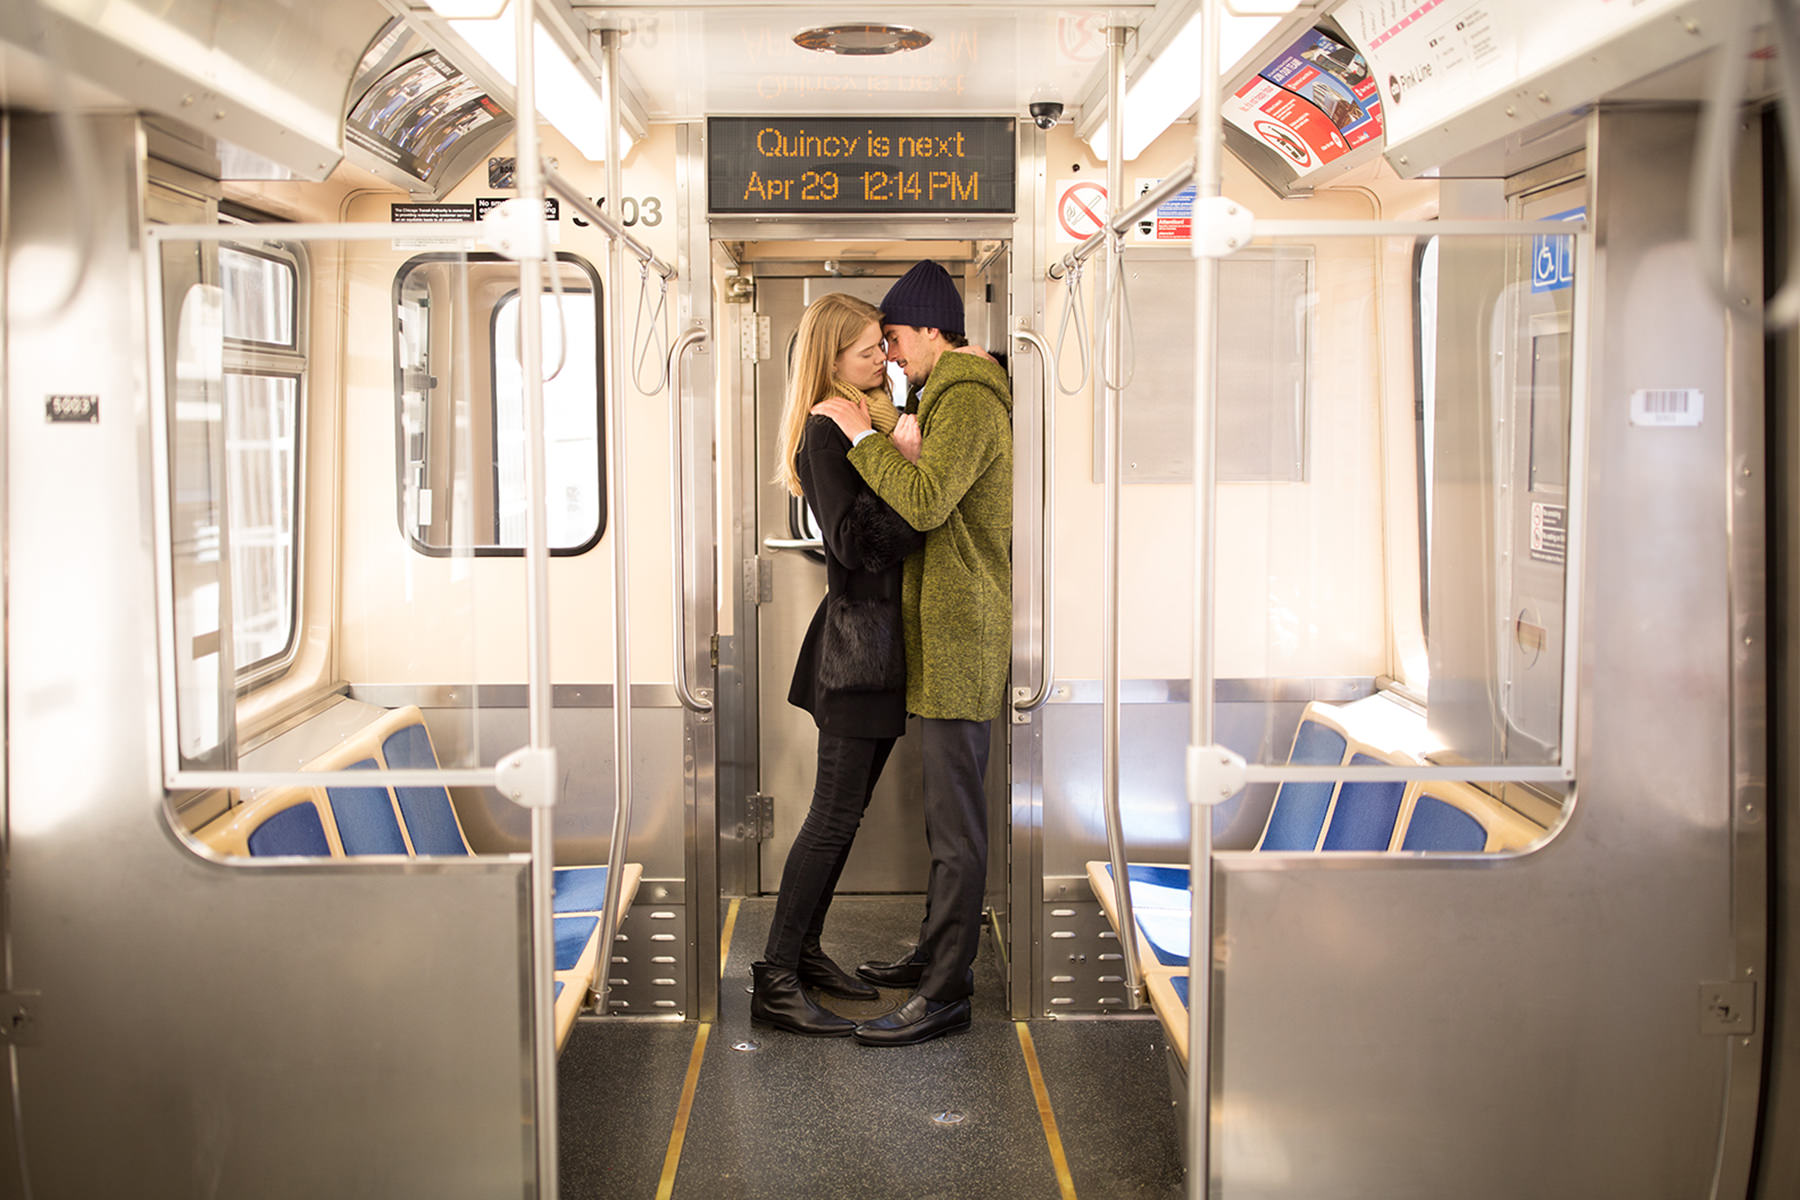 A couple is standing in a train cabin and is about to kiss each other.